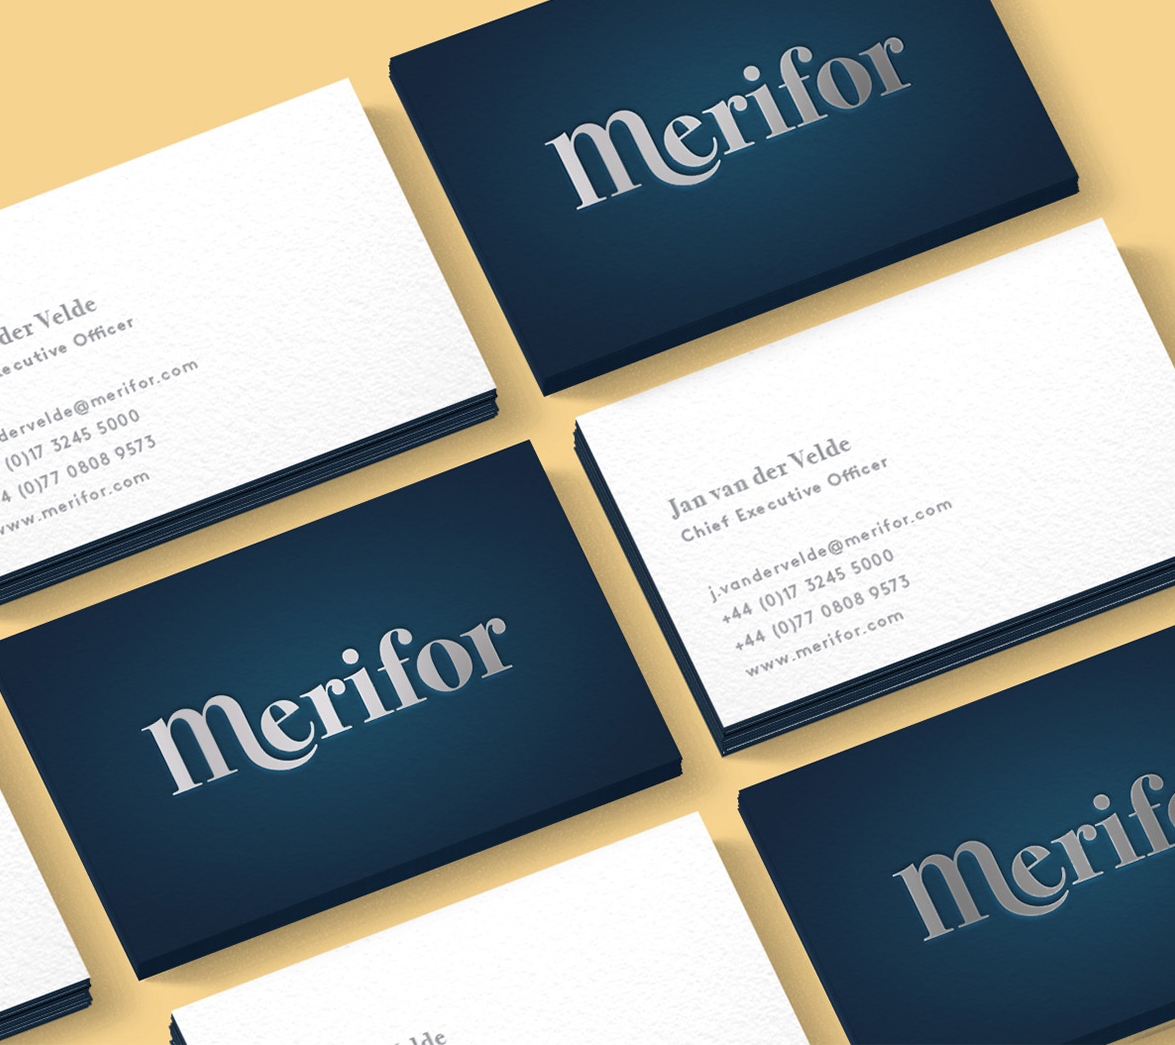 Business cards for mattress startup brand Merifor, art directed by White Bear Studio